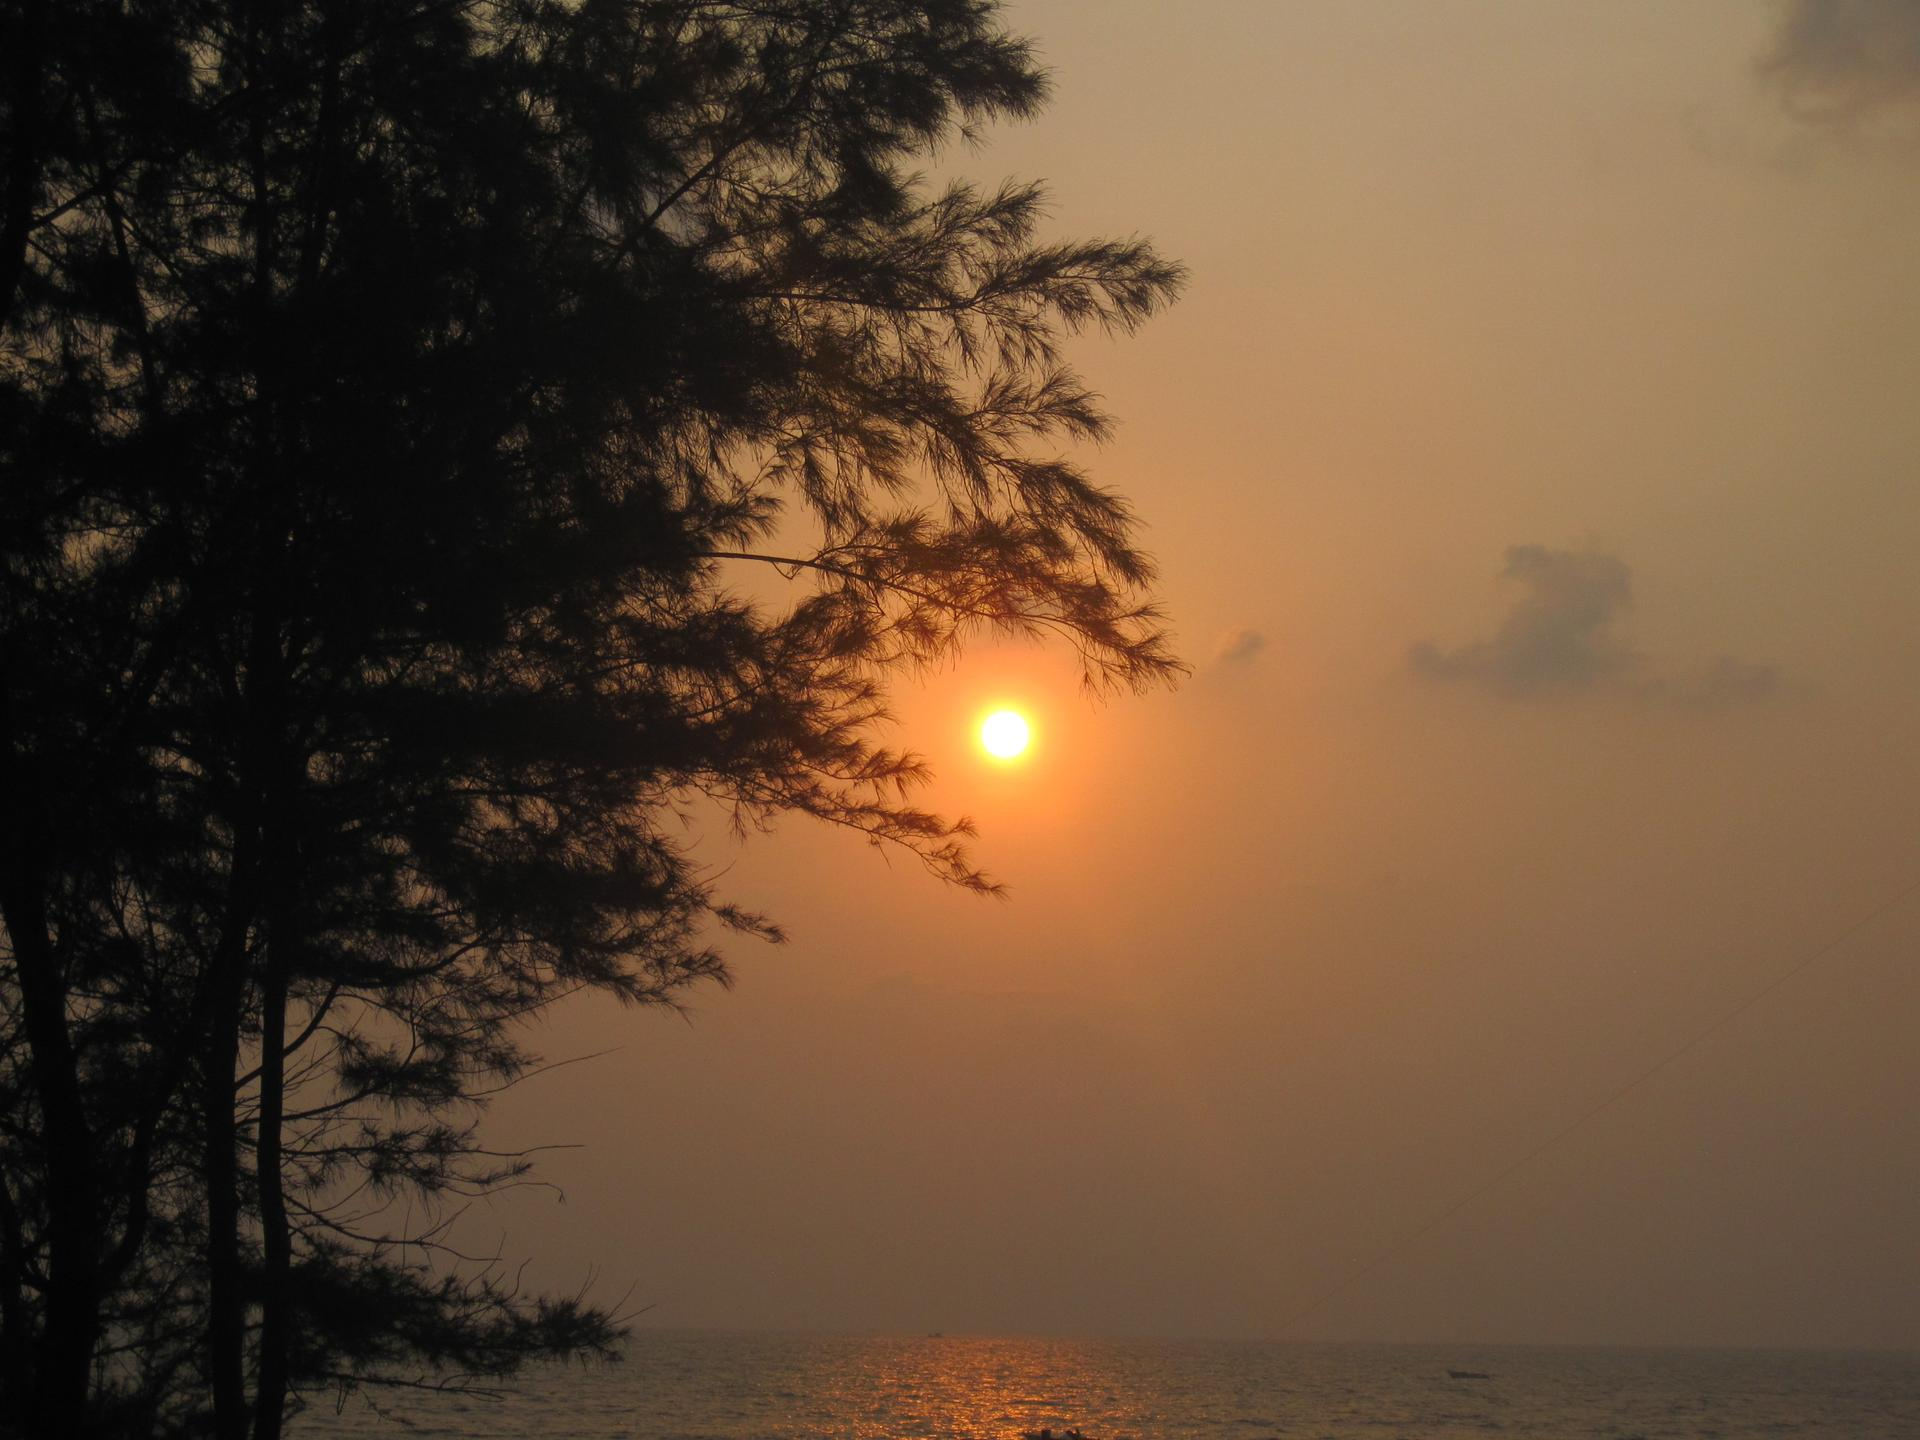 Sunset at Benaulim